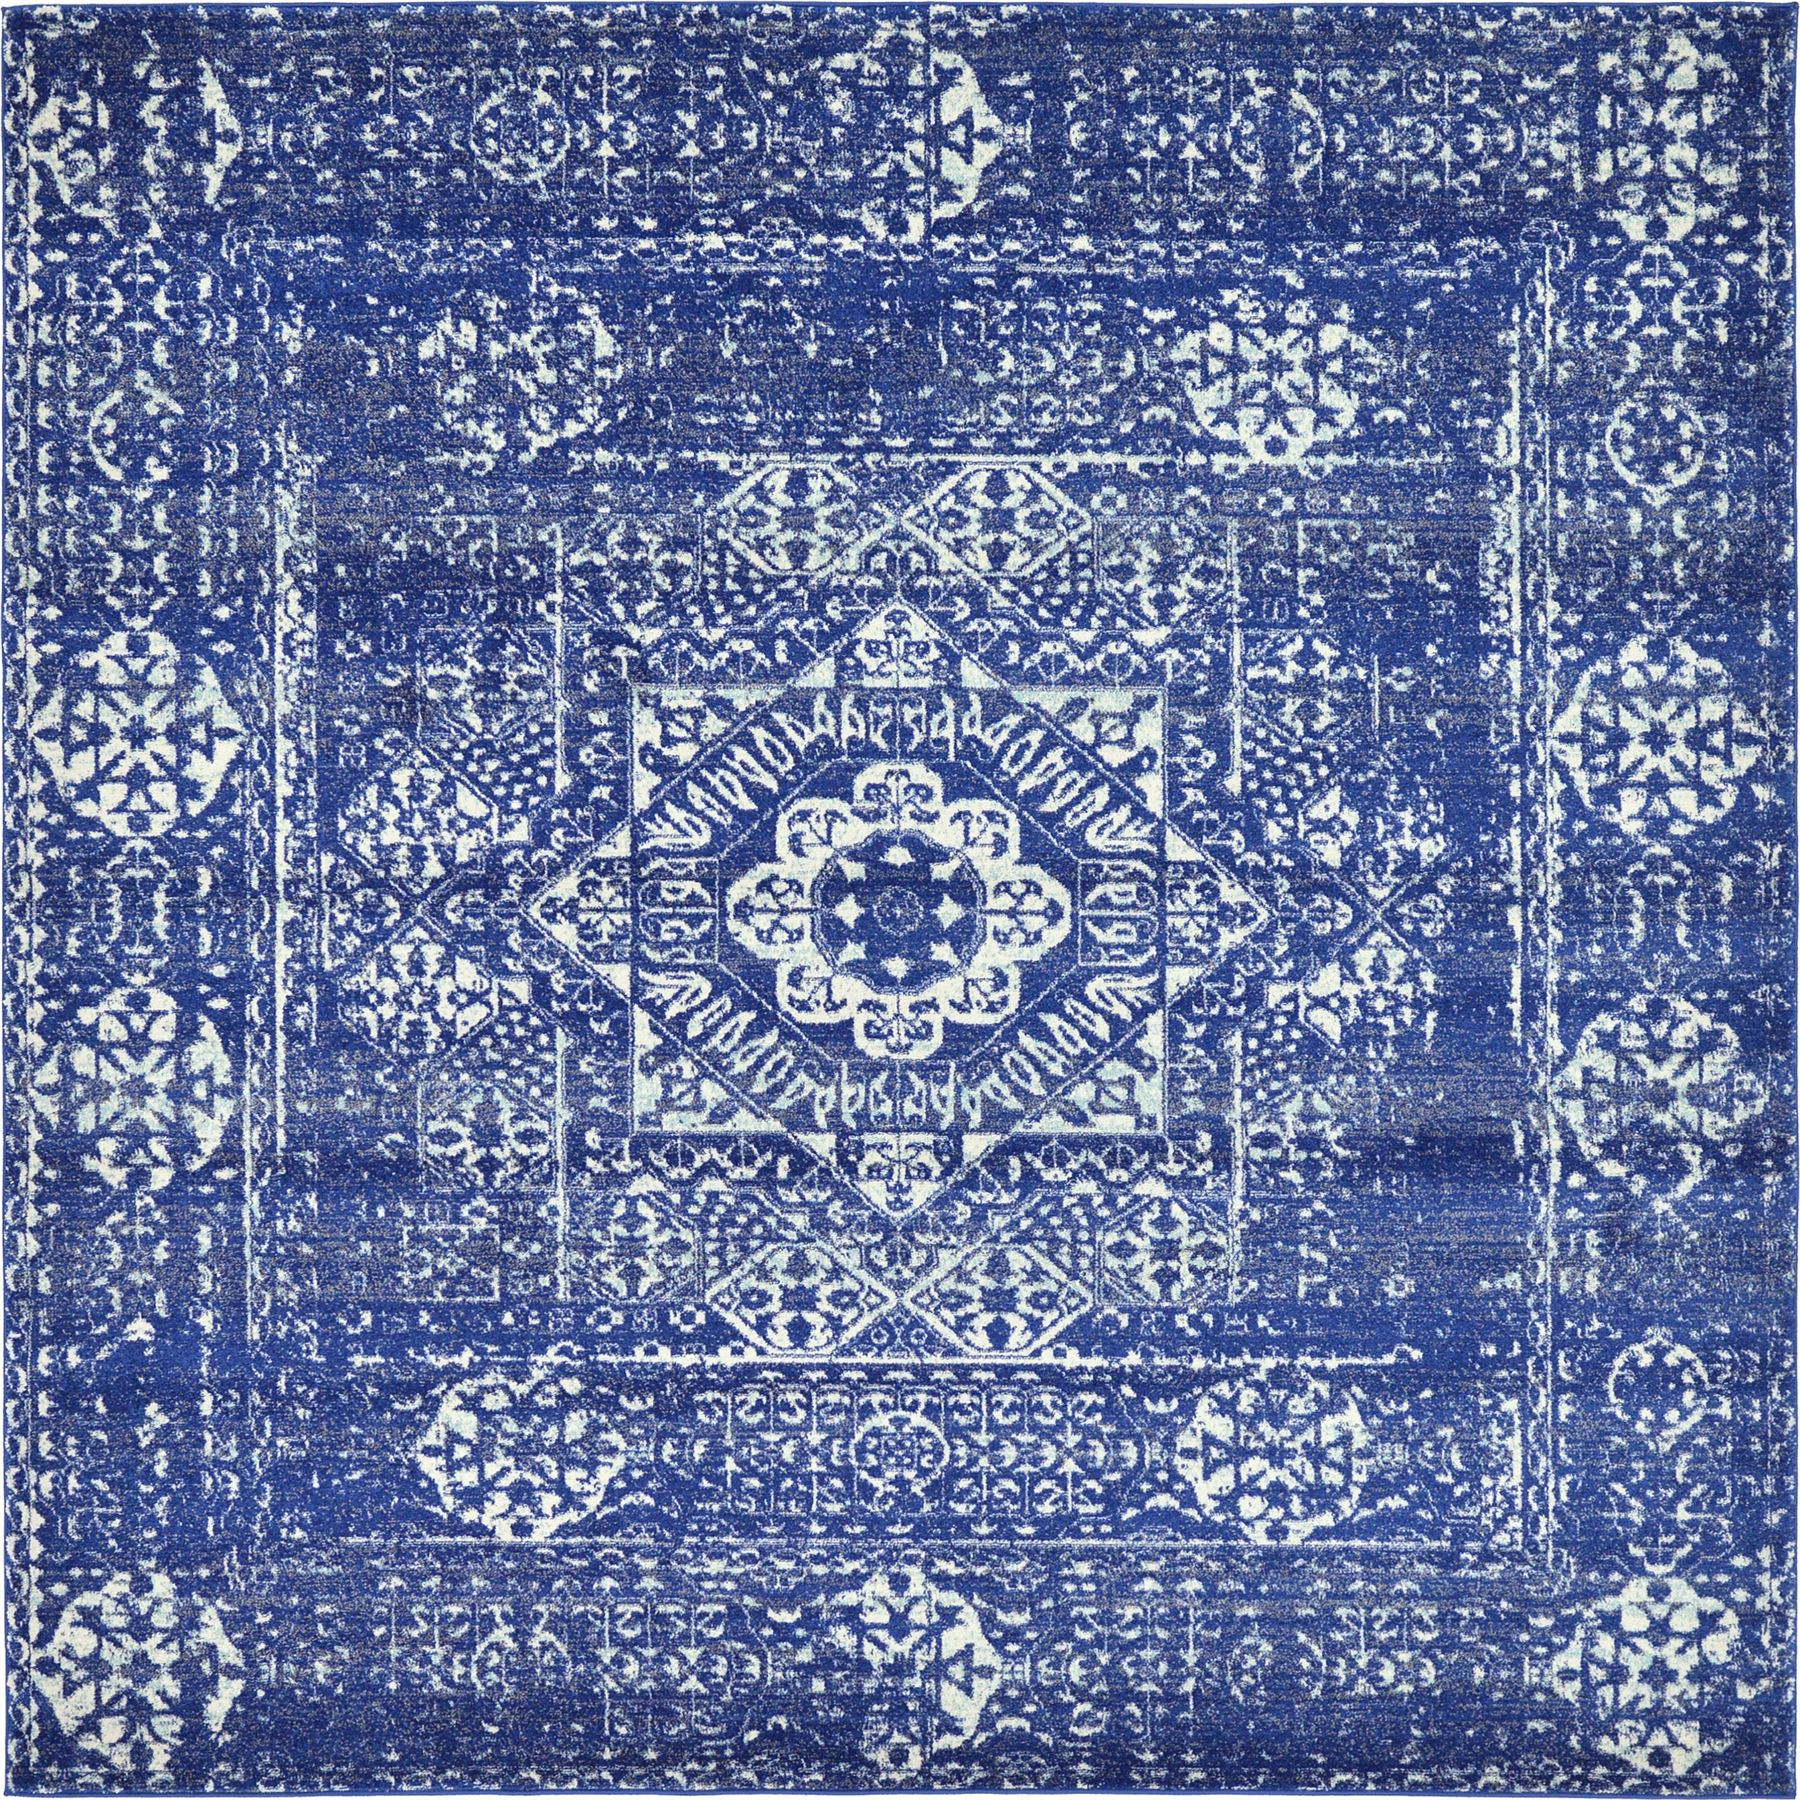 Modern Looking Rug: Transitional Persian Style Area Rug Modern Large Carpet